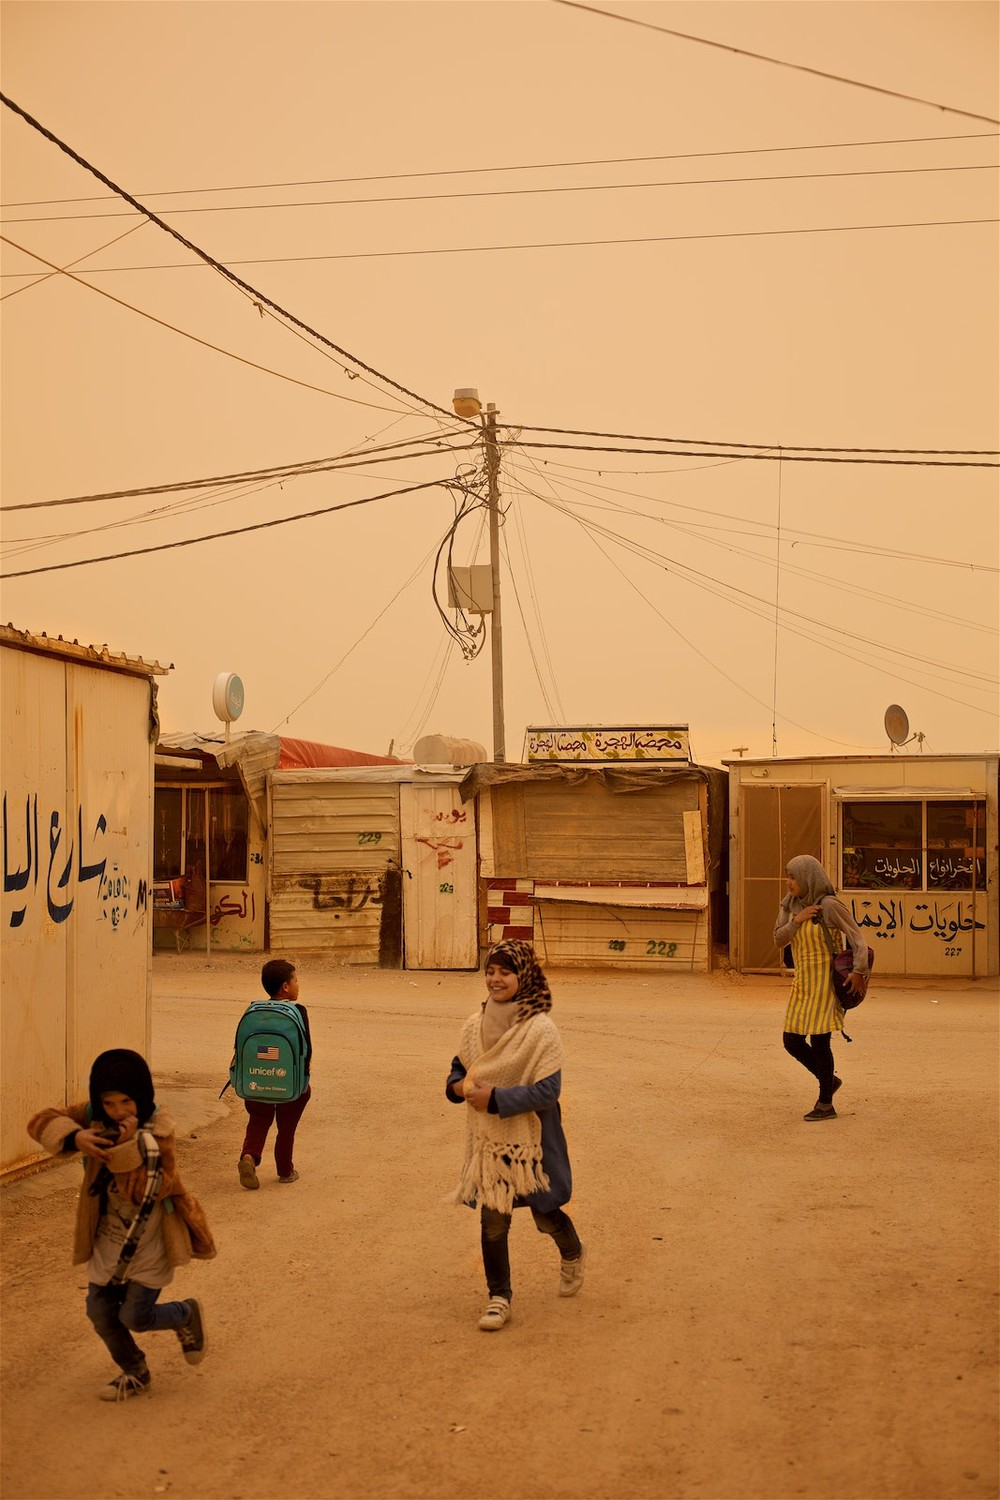 denis-bosnic-zaatari-jordan-refugee-camp-14.jpg